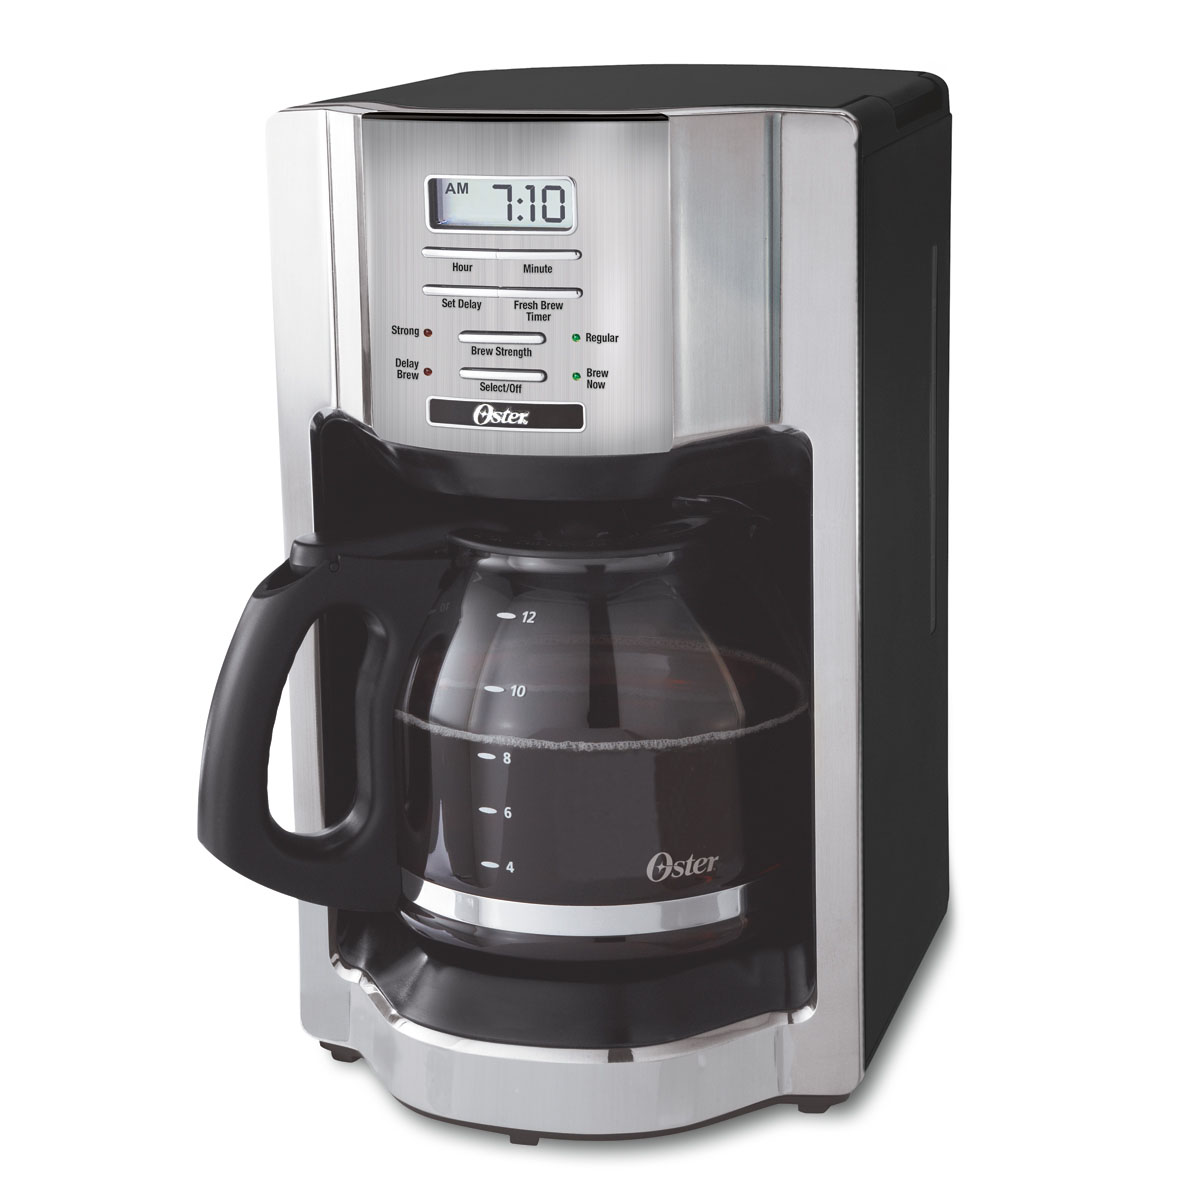 Coffee Maker Parts : Oster 12-cup Programmable Coffee Maker BVSTEHX39-033 Parts Oster Canada